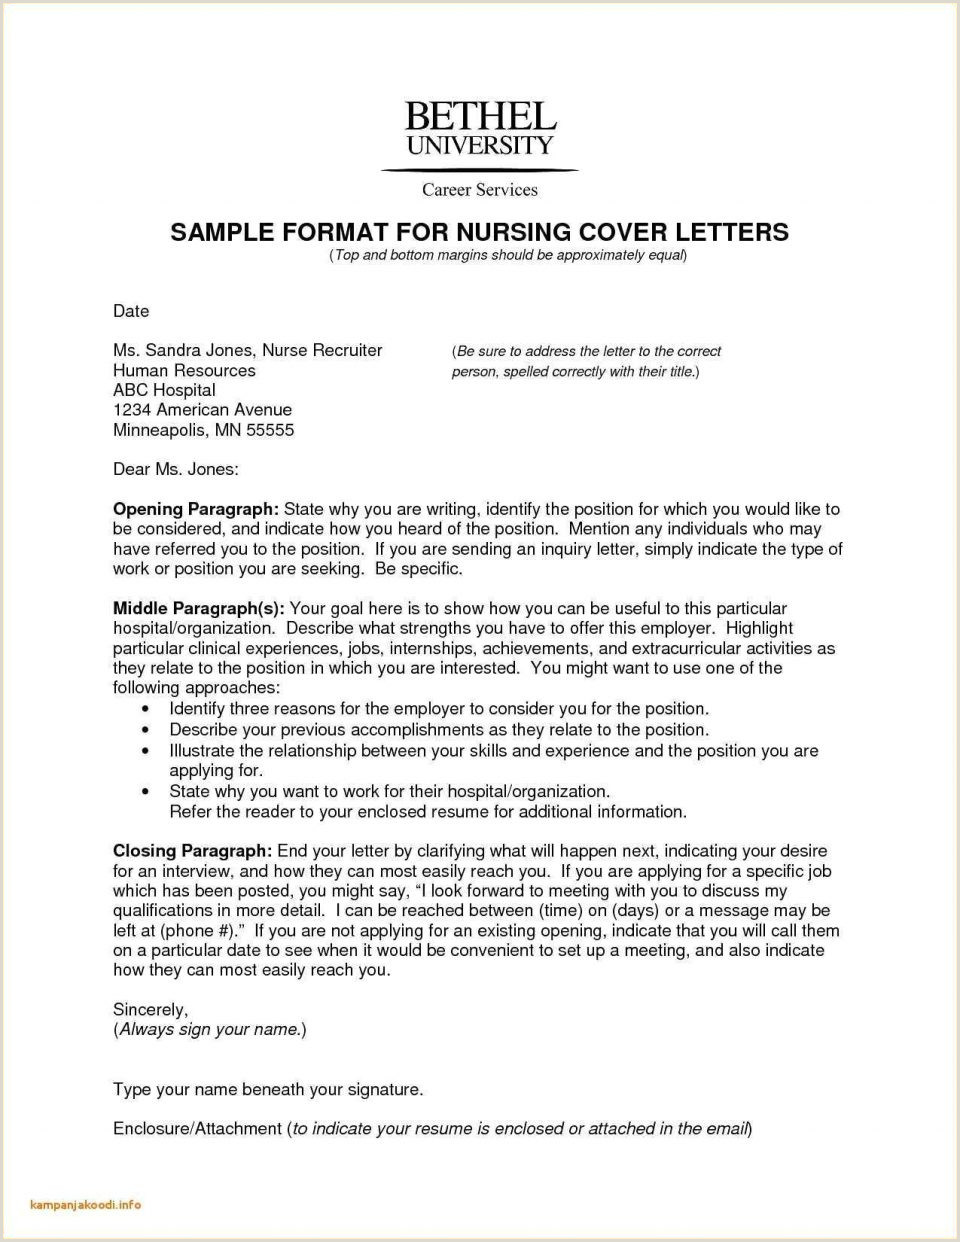 Standard Curriculum Vitae format Pdf Resumes for Nurses Resume Nursing Best Template Sample